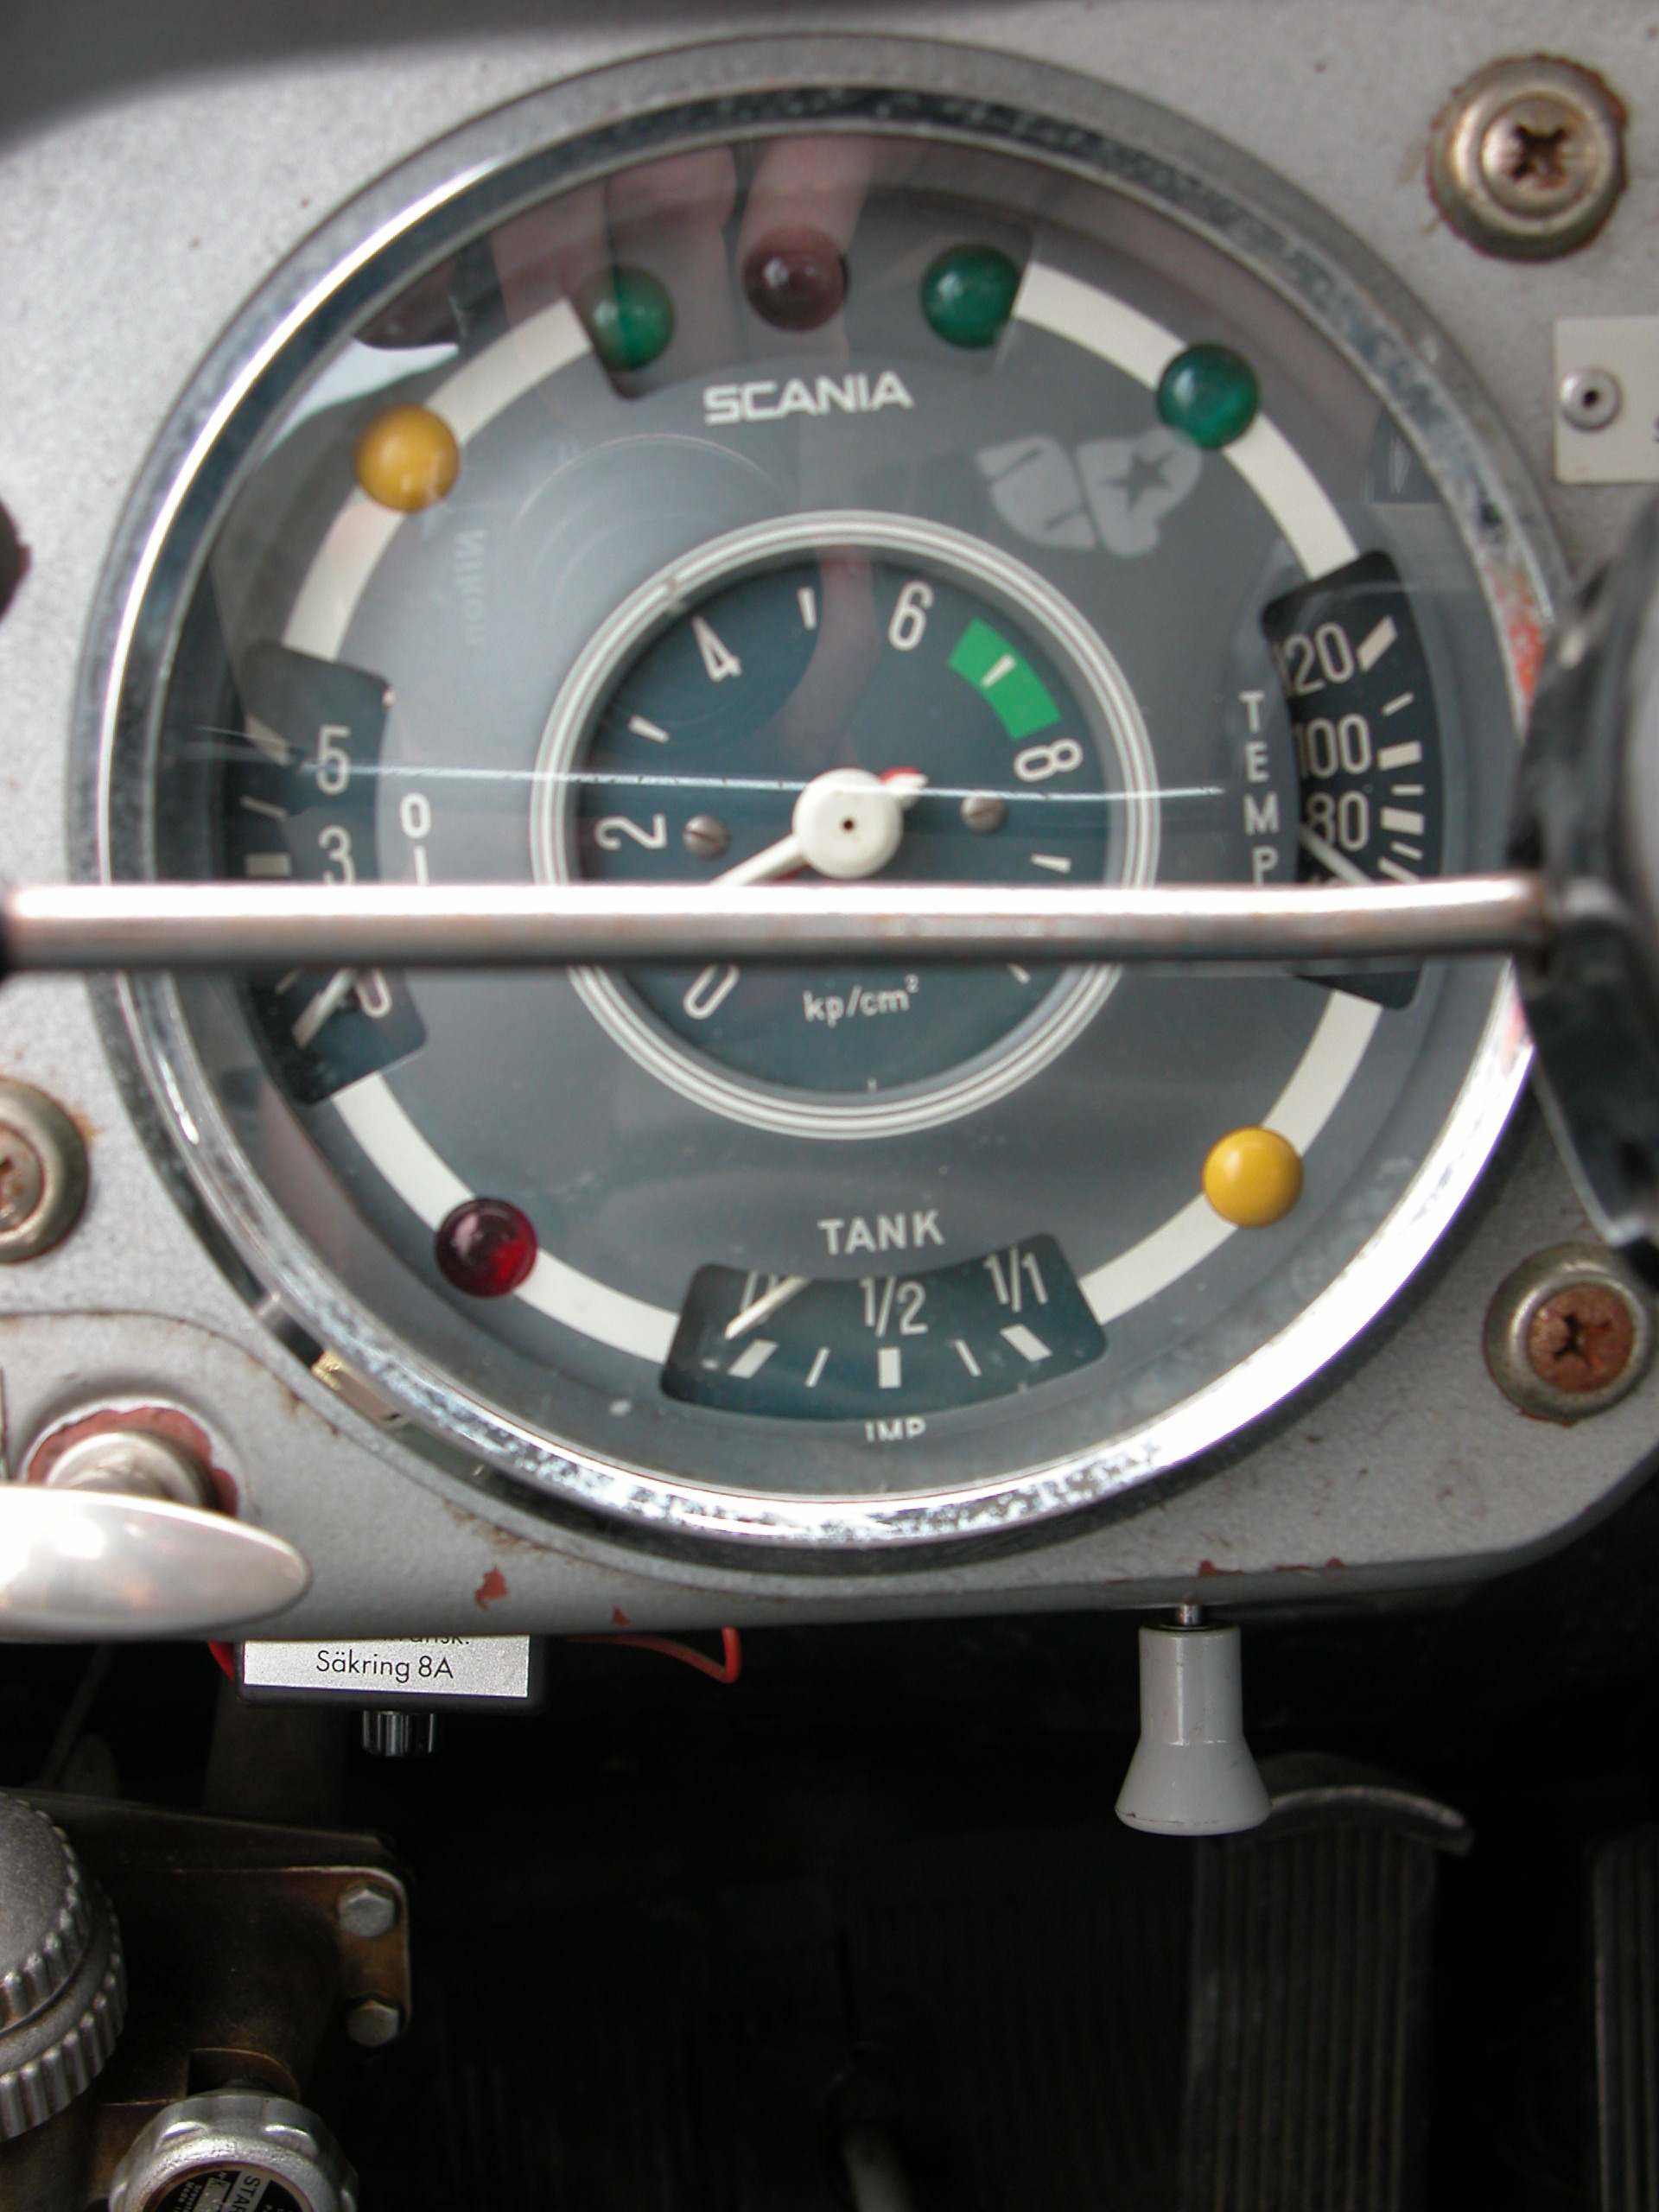 dashboard car meter scania velocity speed counter round